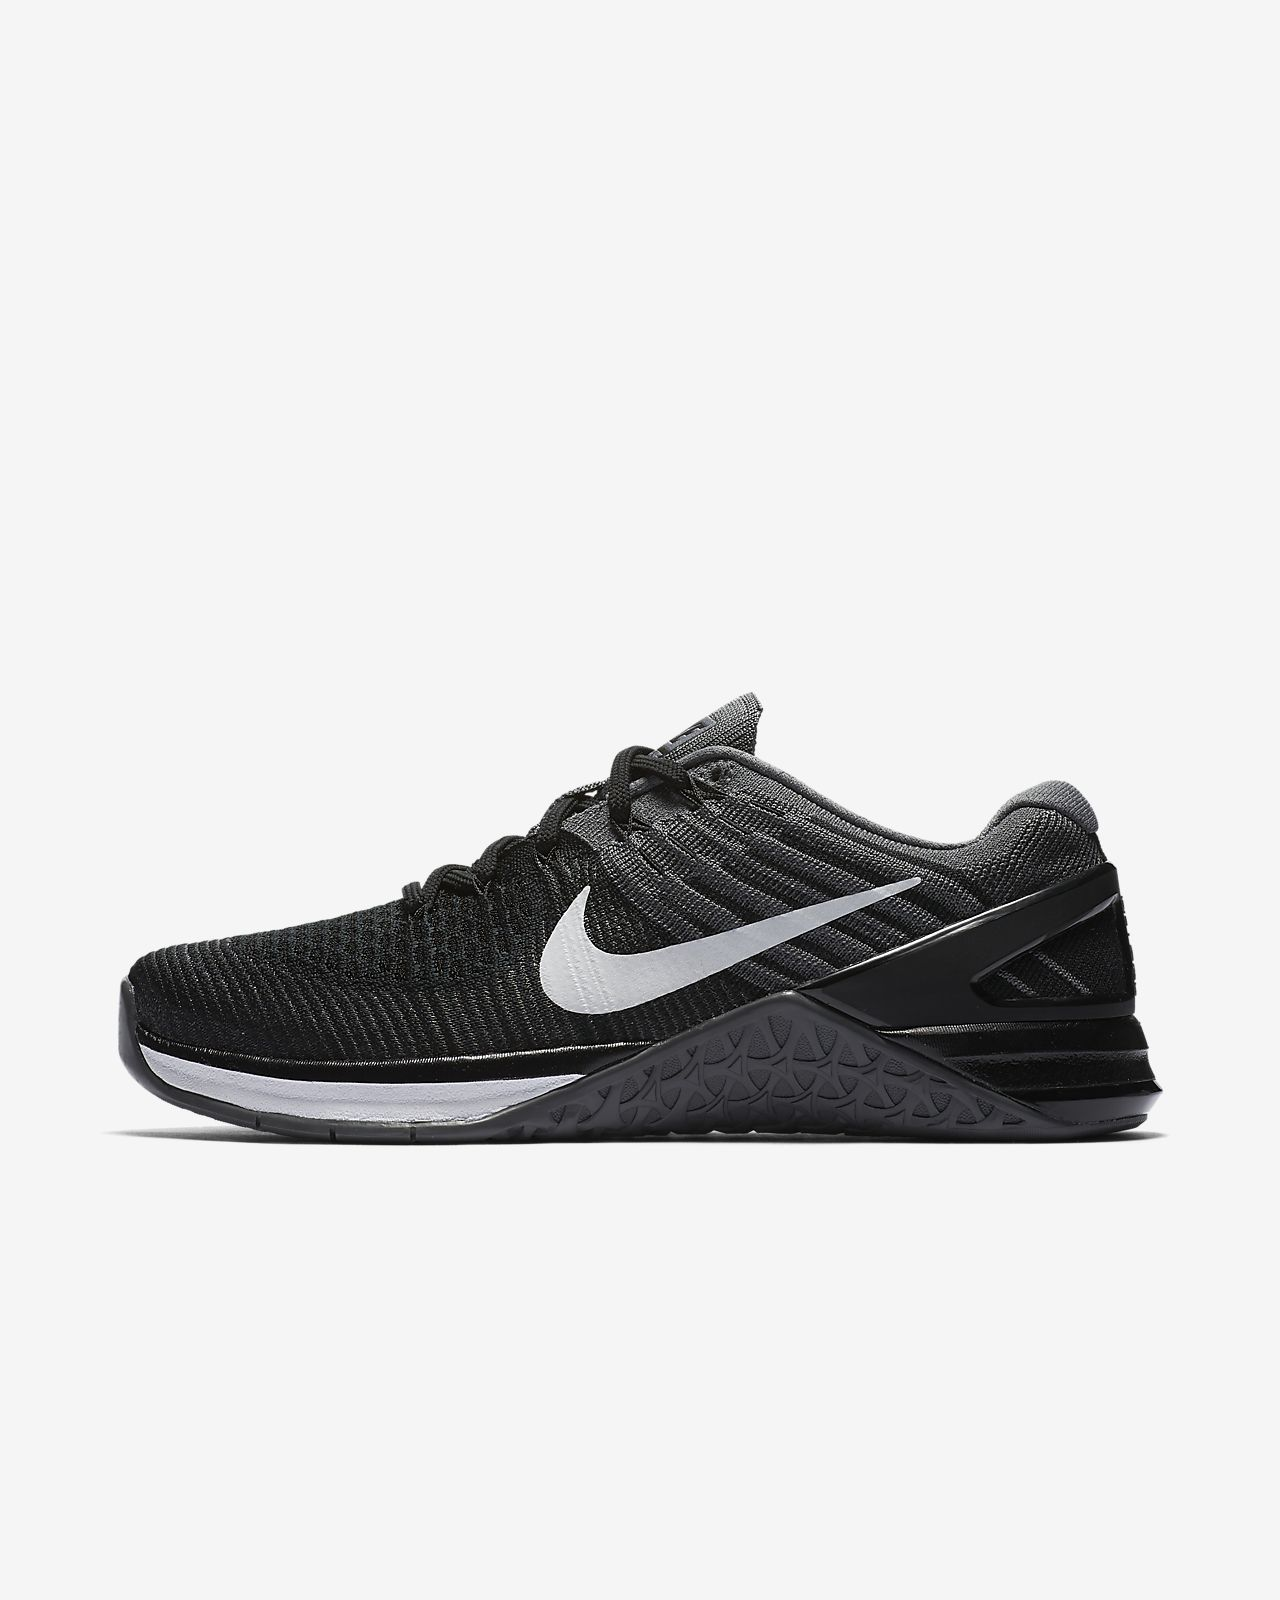 Chaussures Nike Metcon Dsx Flyknit 04uAFL